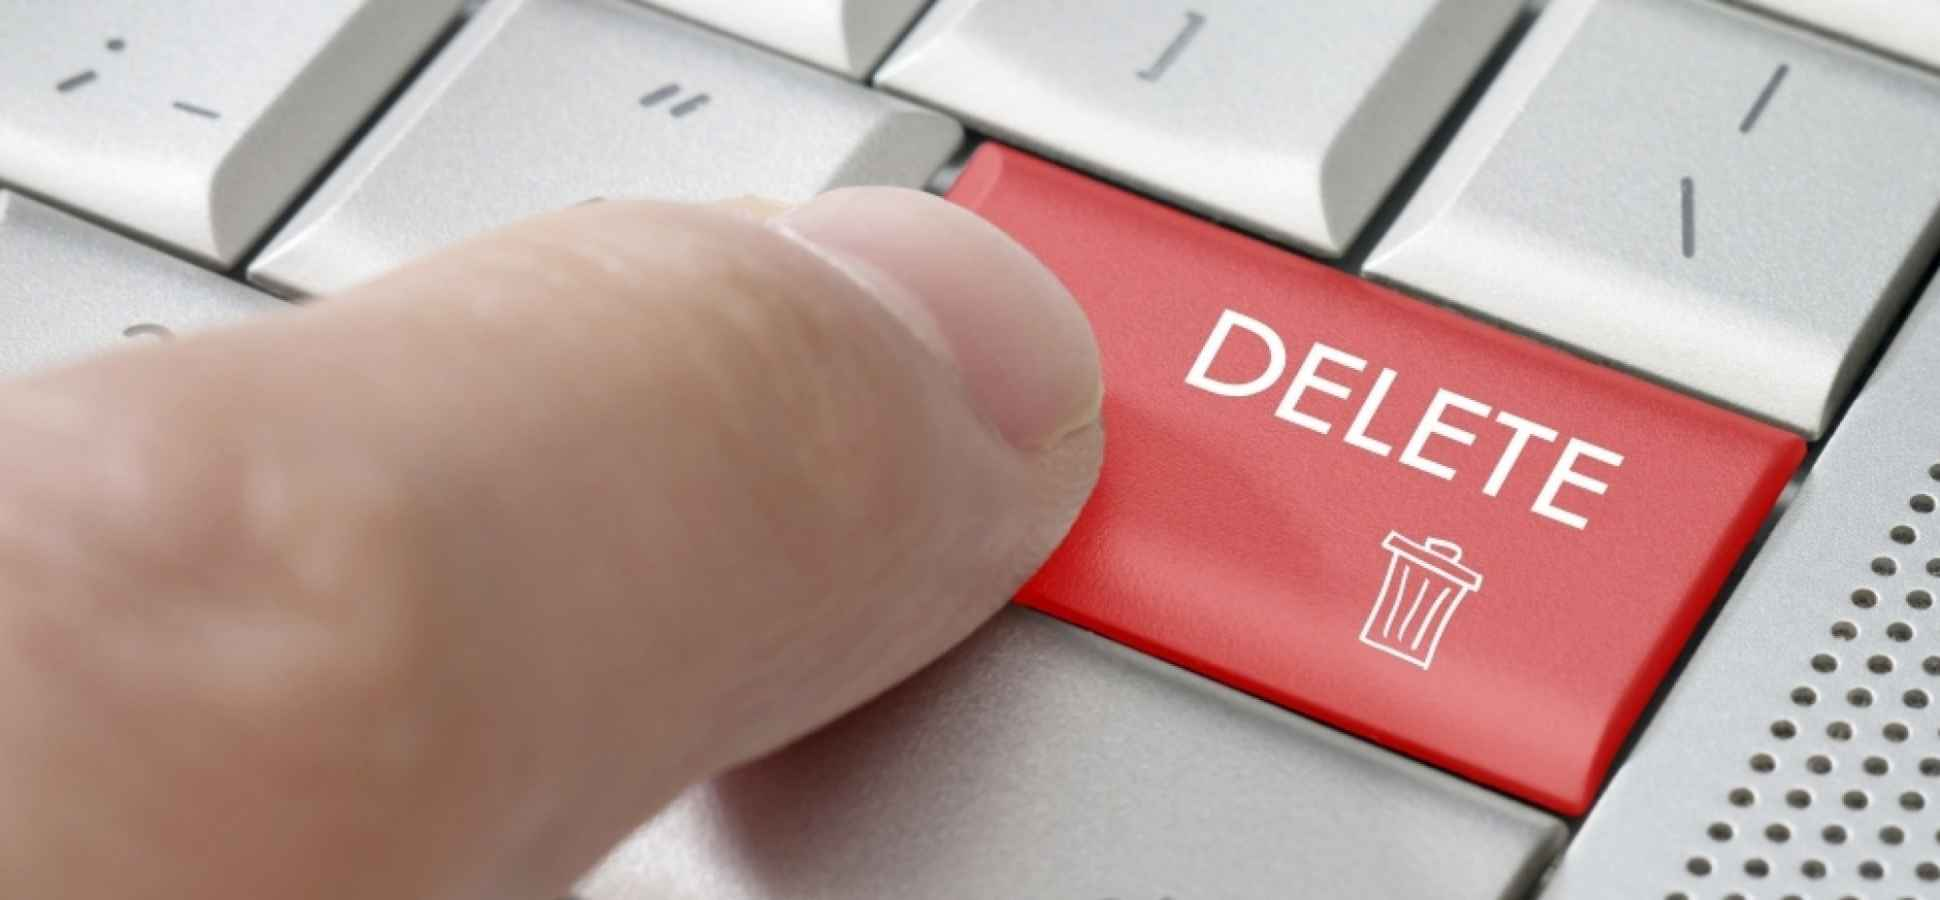 3 Easily-Avoidable Email Mistakes